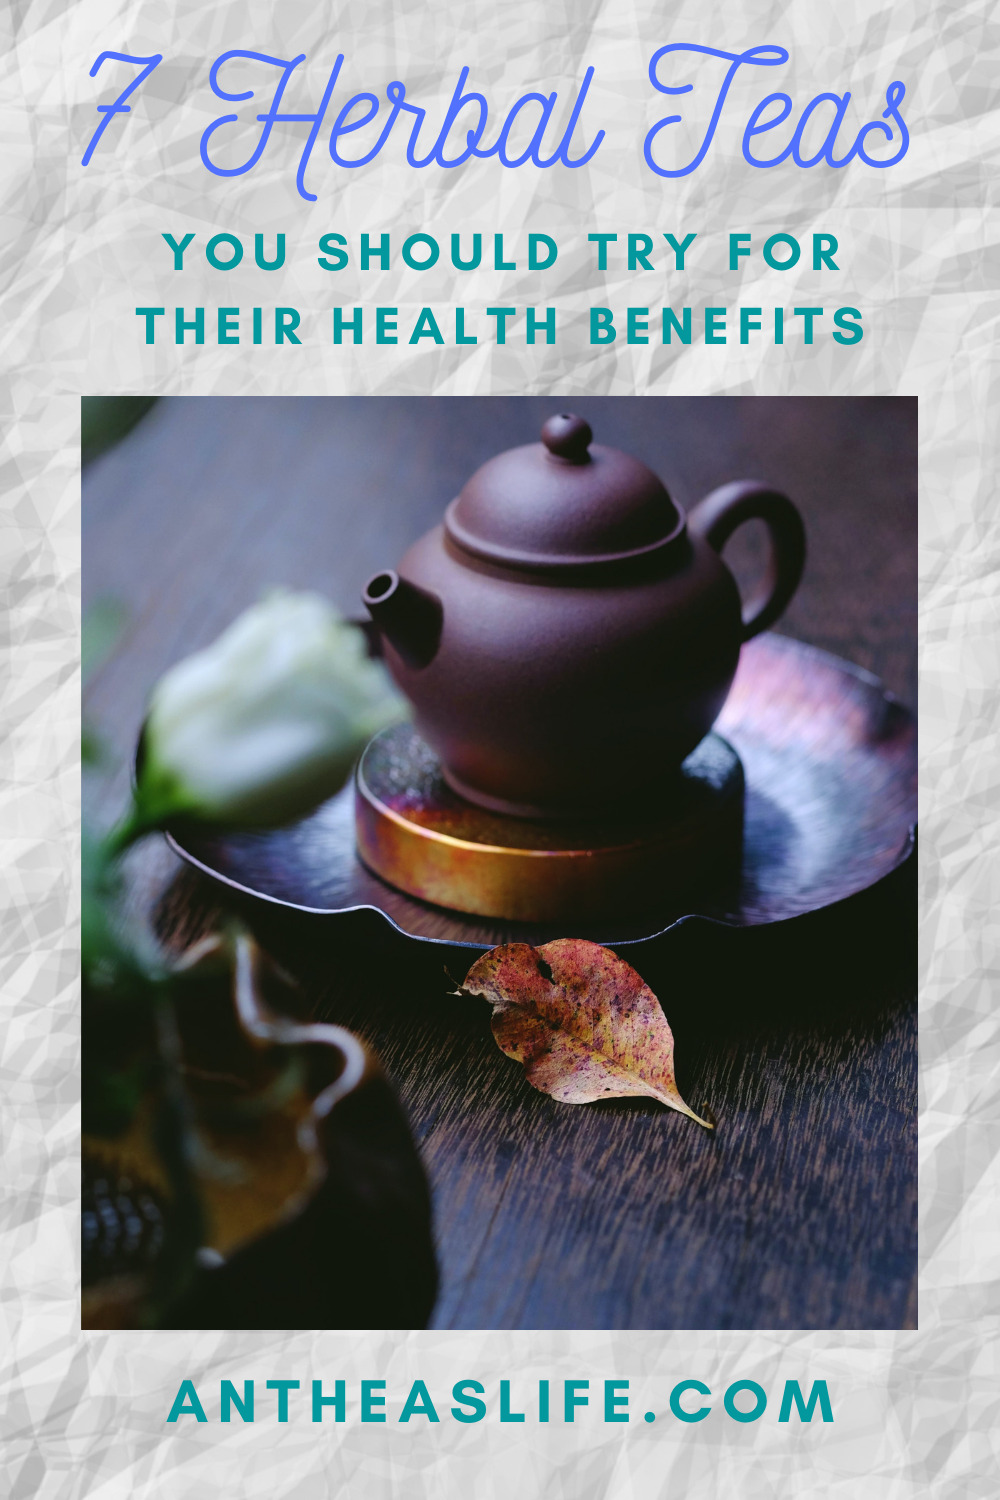 7-herbal-teas-you-should-try